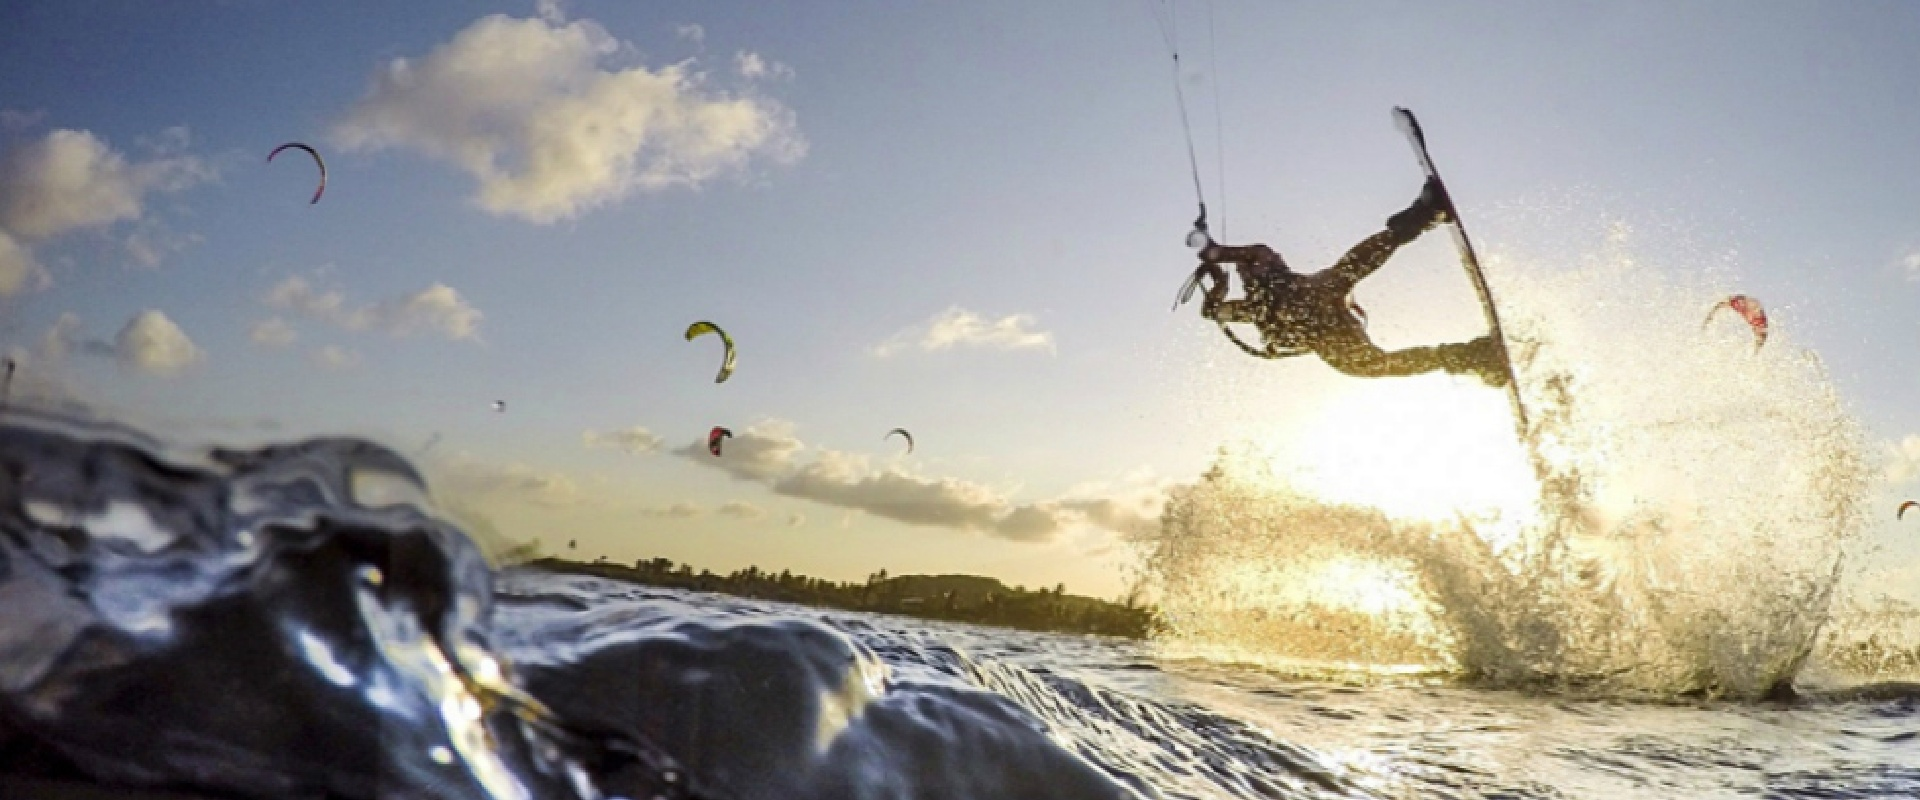 kite surfing with good waves